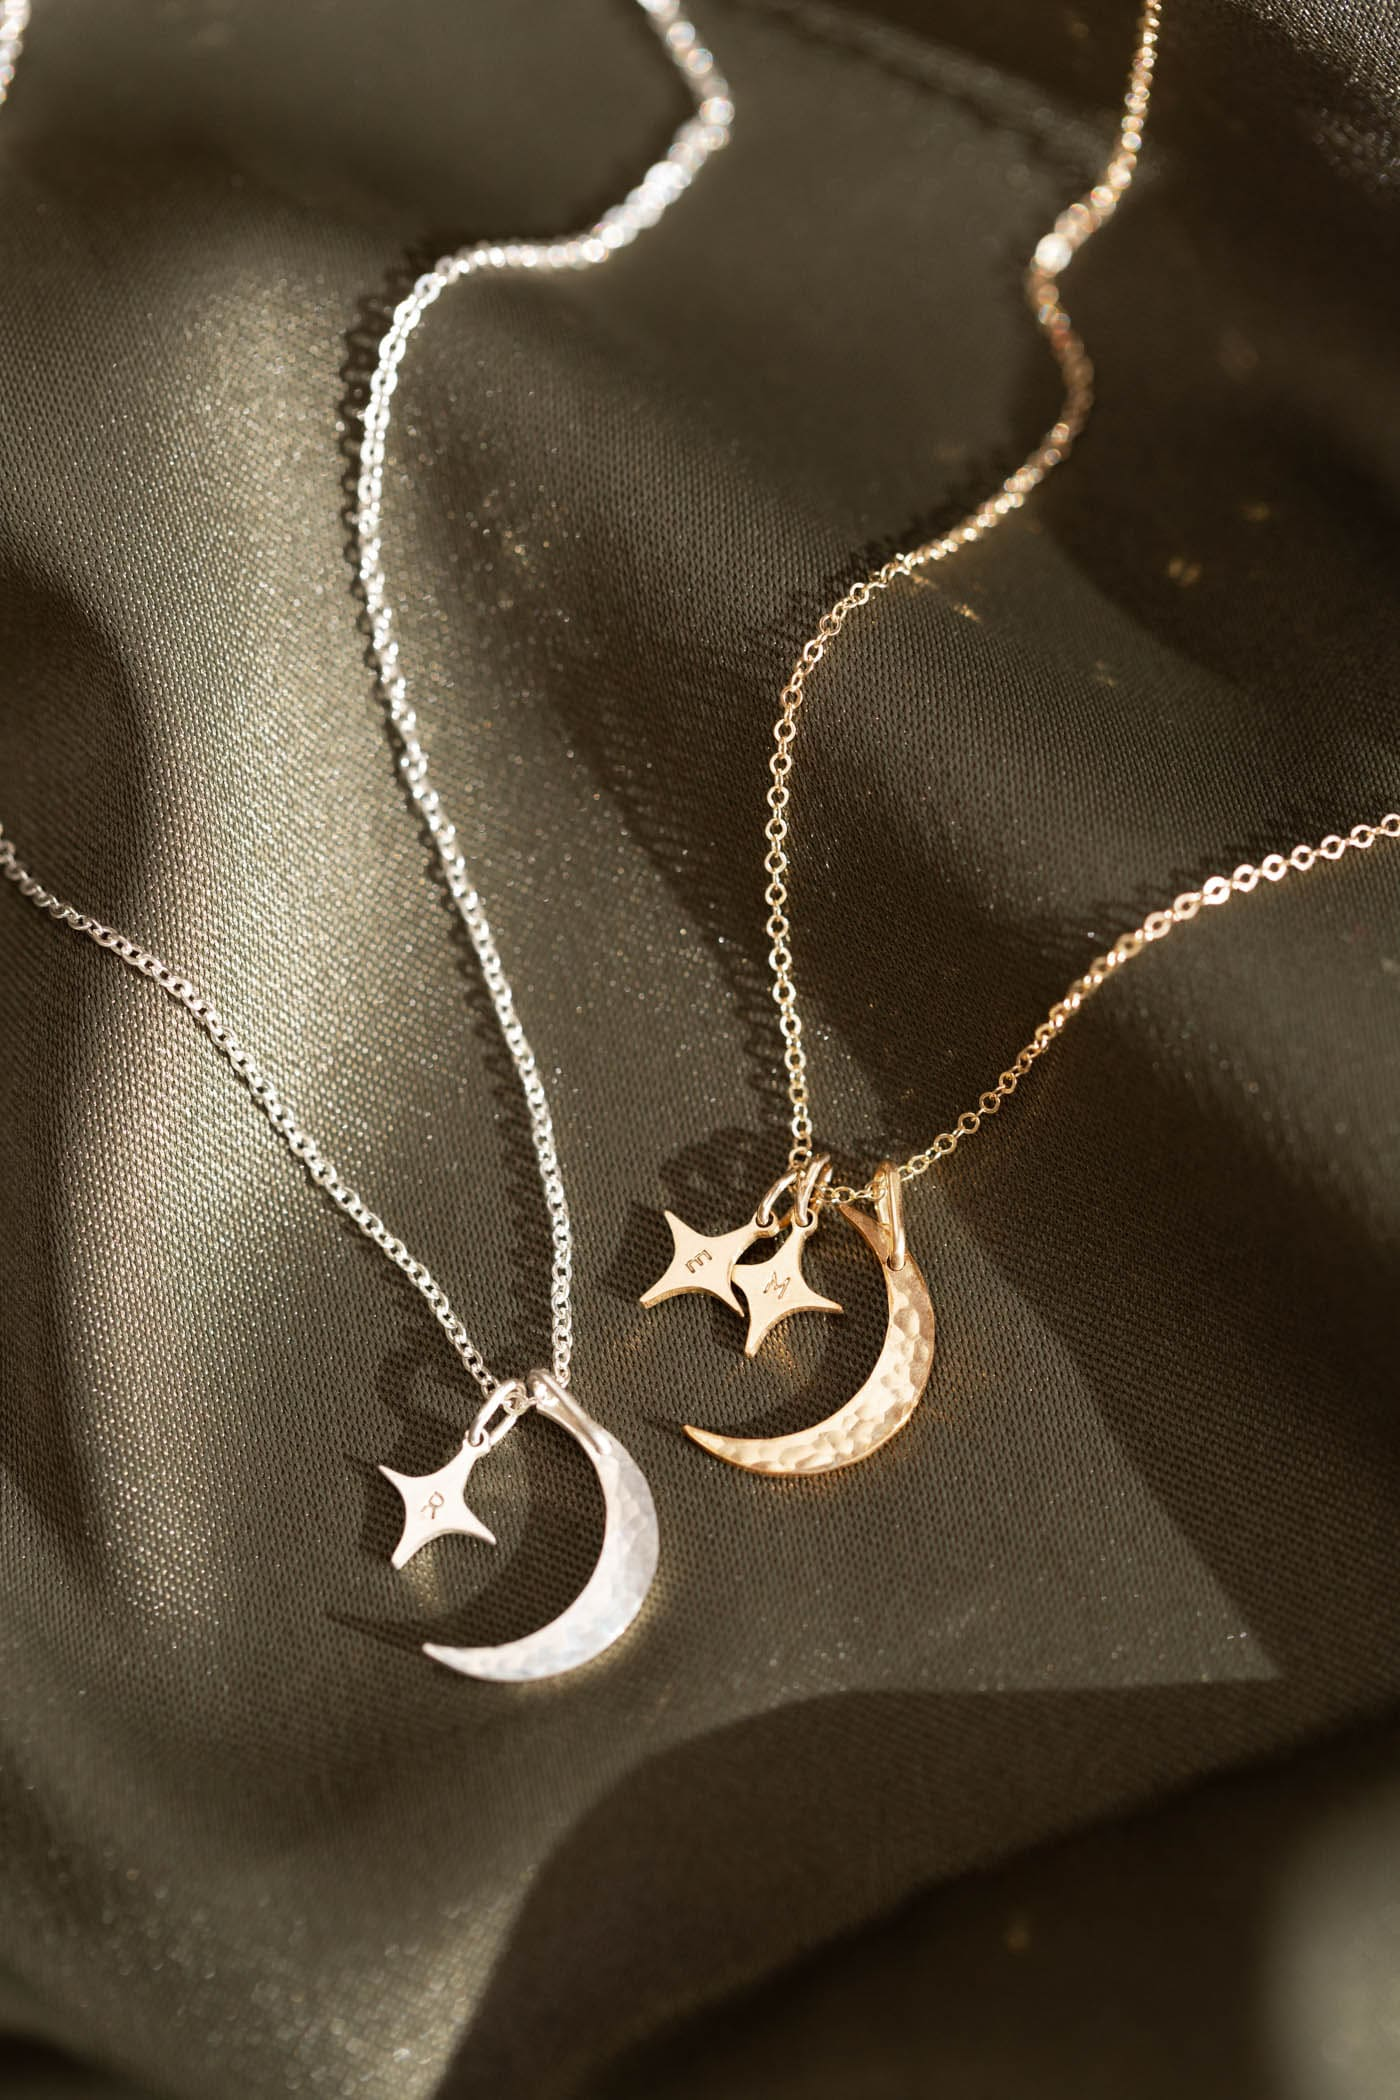 Birthday Gifts for her-Gifts for women-I love you to the moon and back-Personalized Initials Necklace-Moon and Star necklace-friendship Gift